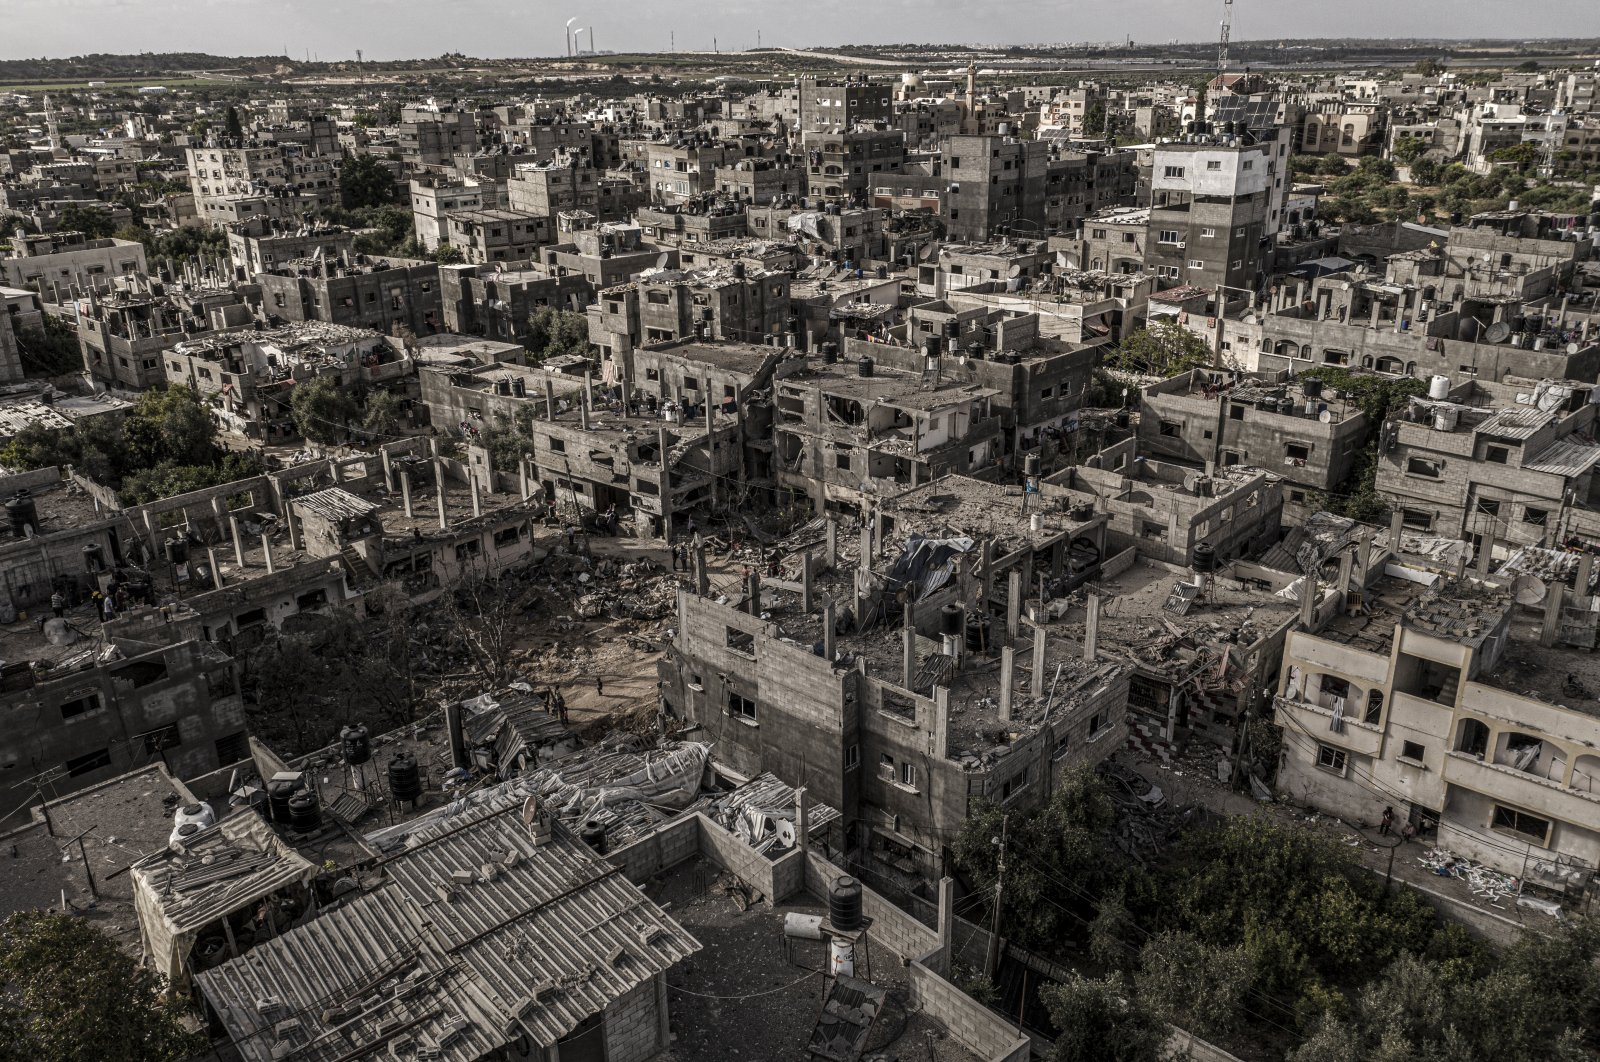 A drone views of the ruins of buildings that was destroyed by Israeli air strikes, Gaza, Palestine, June 11, 2021.  (Photo by Getty Images)